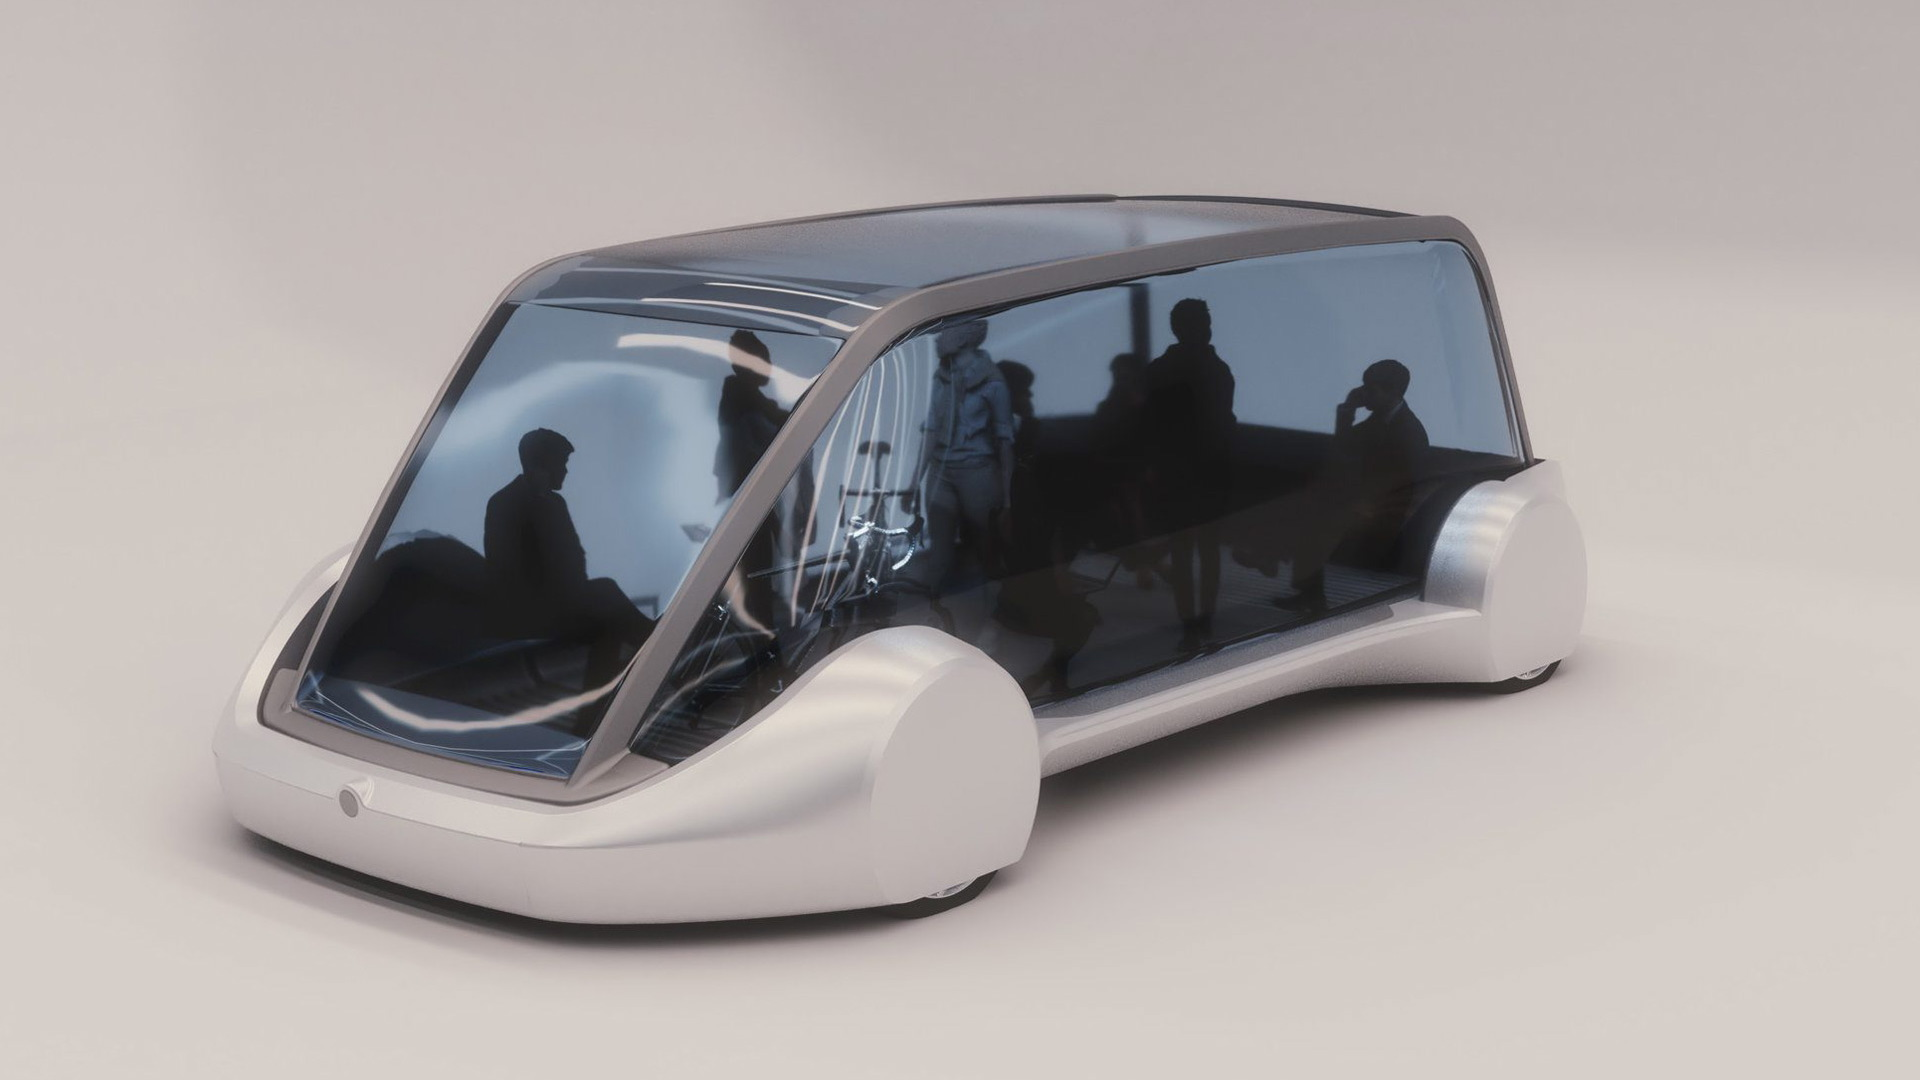 The Boring Company concept